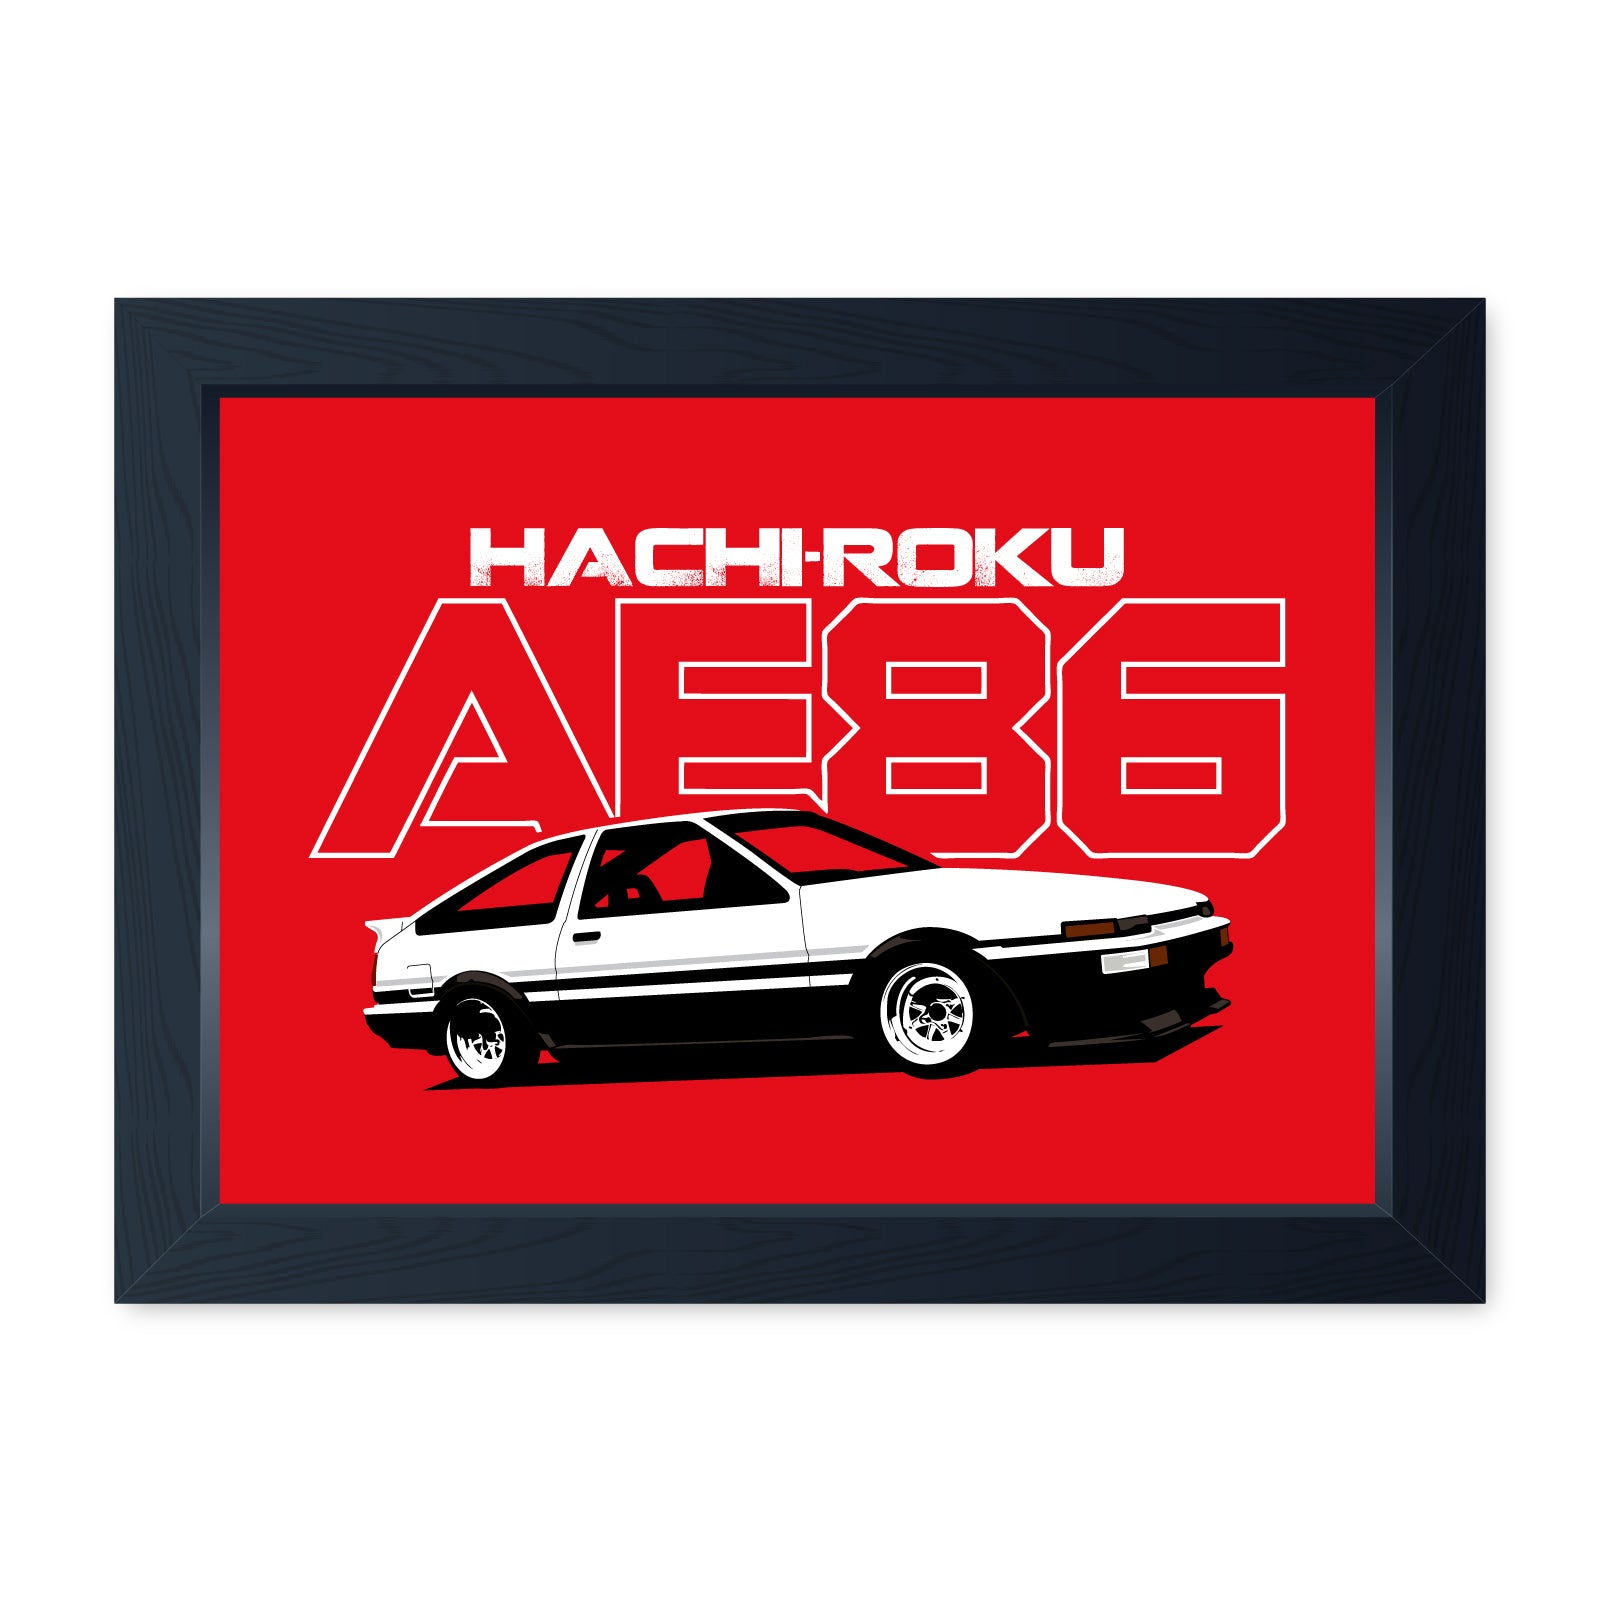 AE86 Hachiroku JDM, Quality Framed Print - Home Decor Kitchen Bathroom Man Cave Wall Art